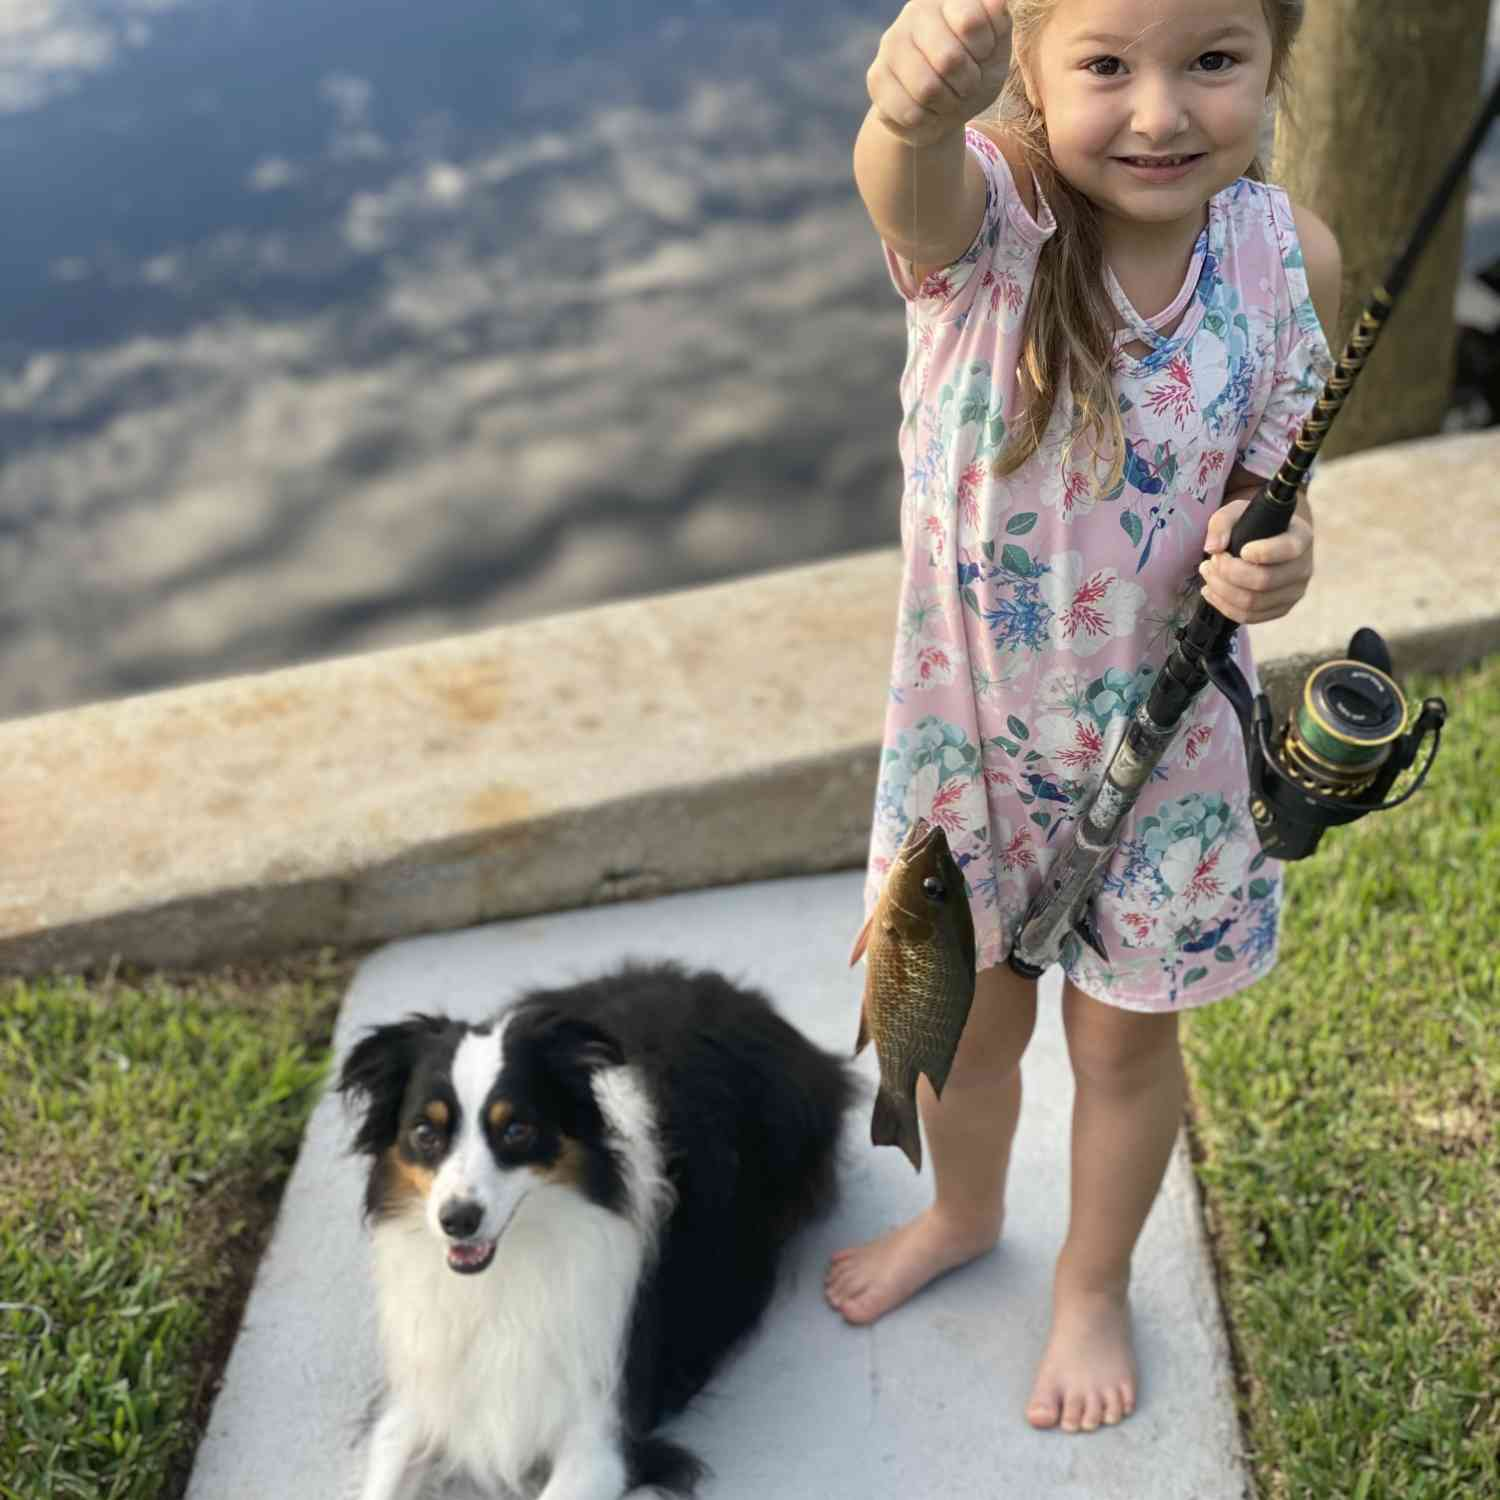 My daughter fishing at the house our boat will live. We can't wait for our first boat and are p...